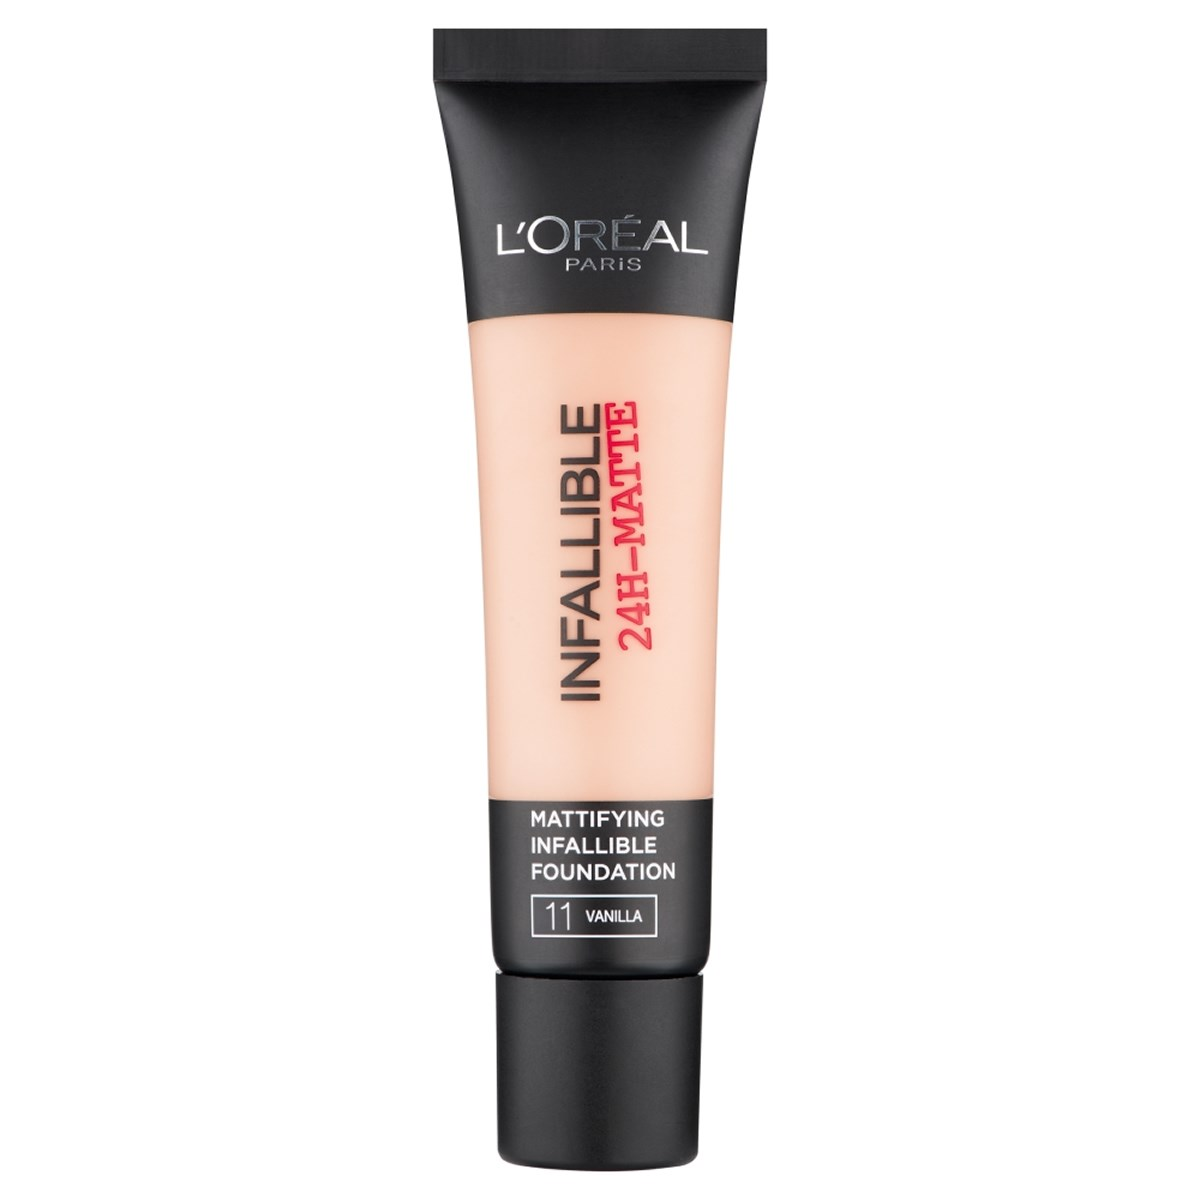 L'Oreal Paris Infallible 24H-Matte Foundation